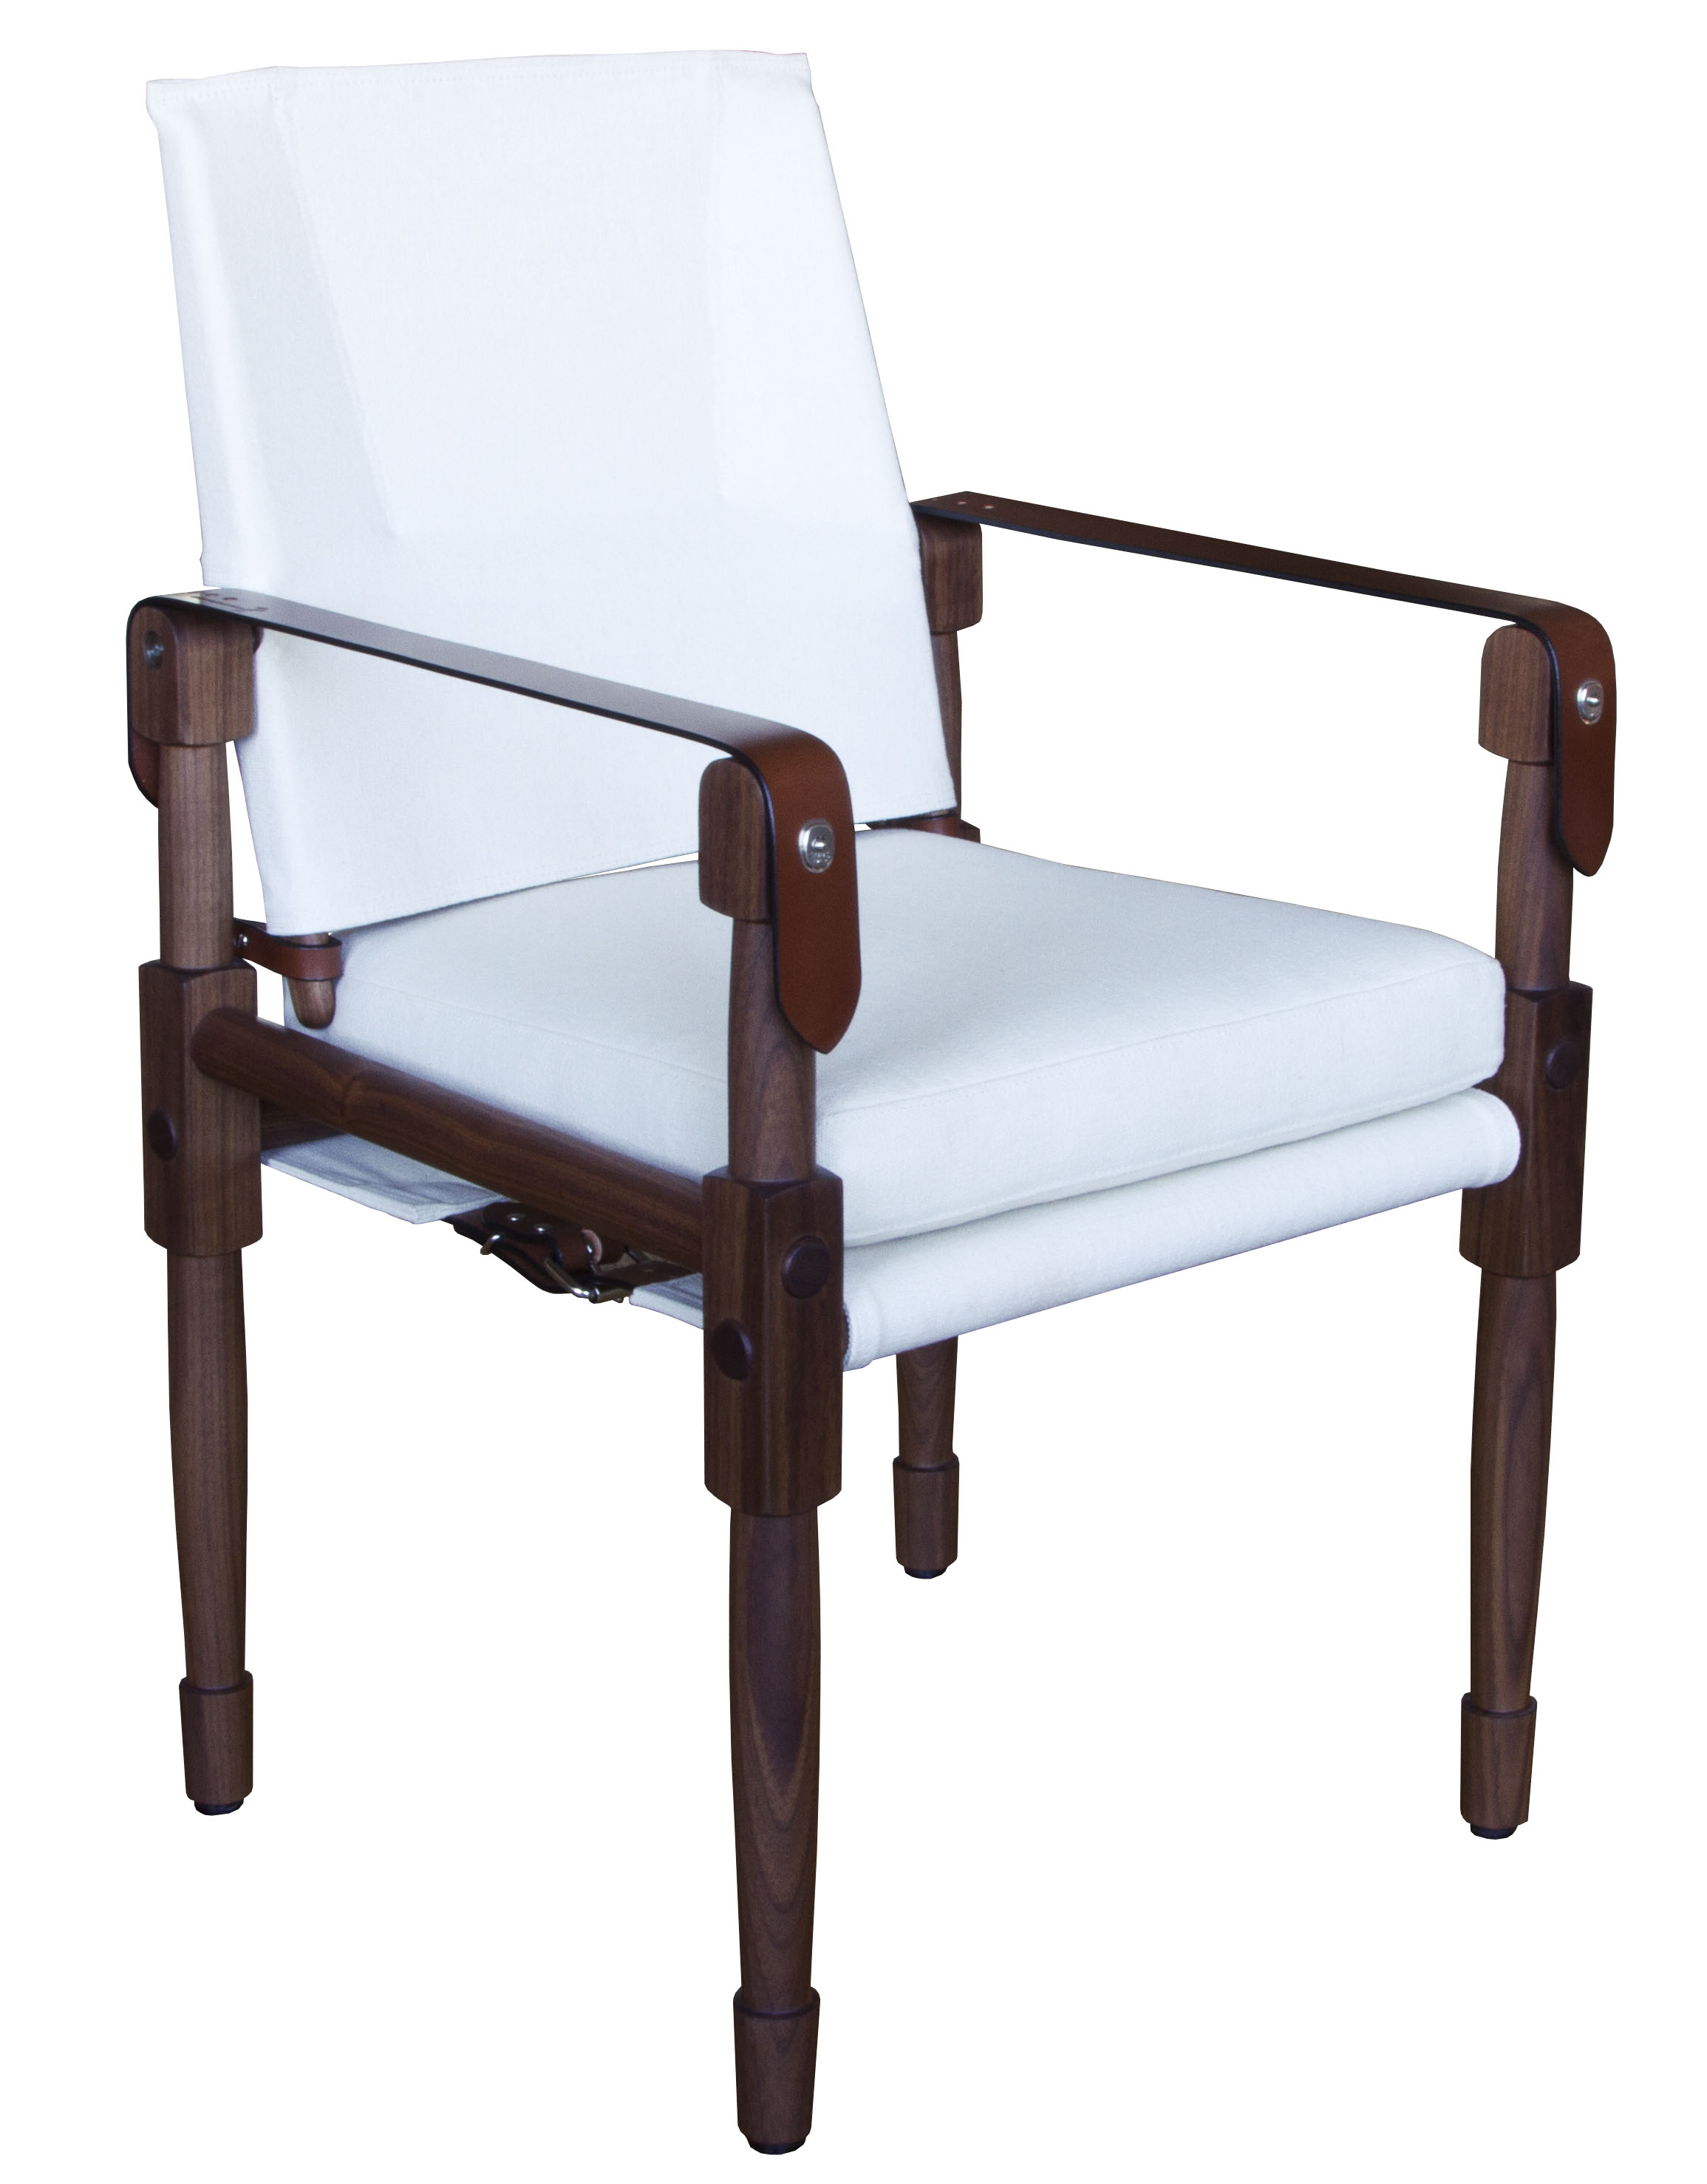 Chatwin Chair with saddle straps